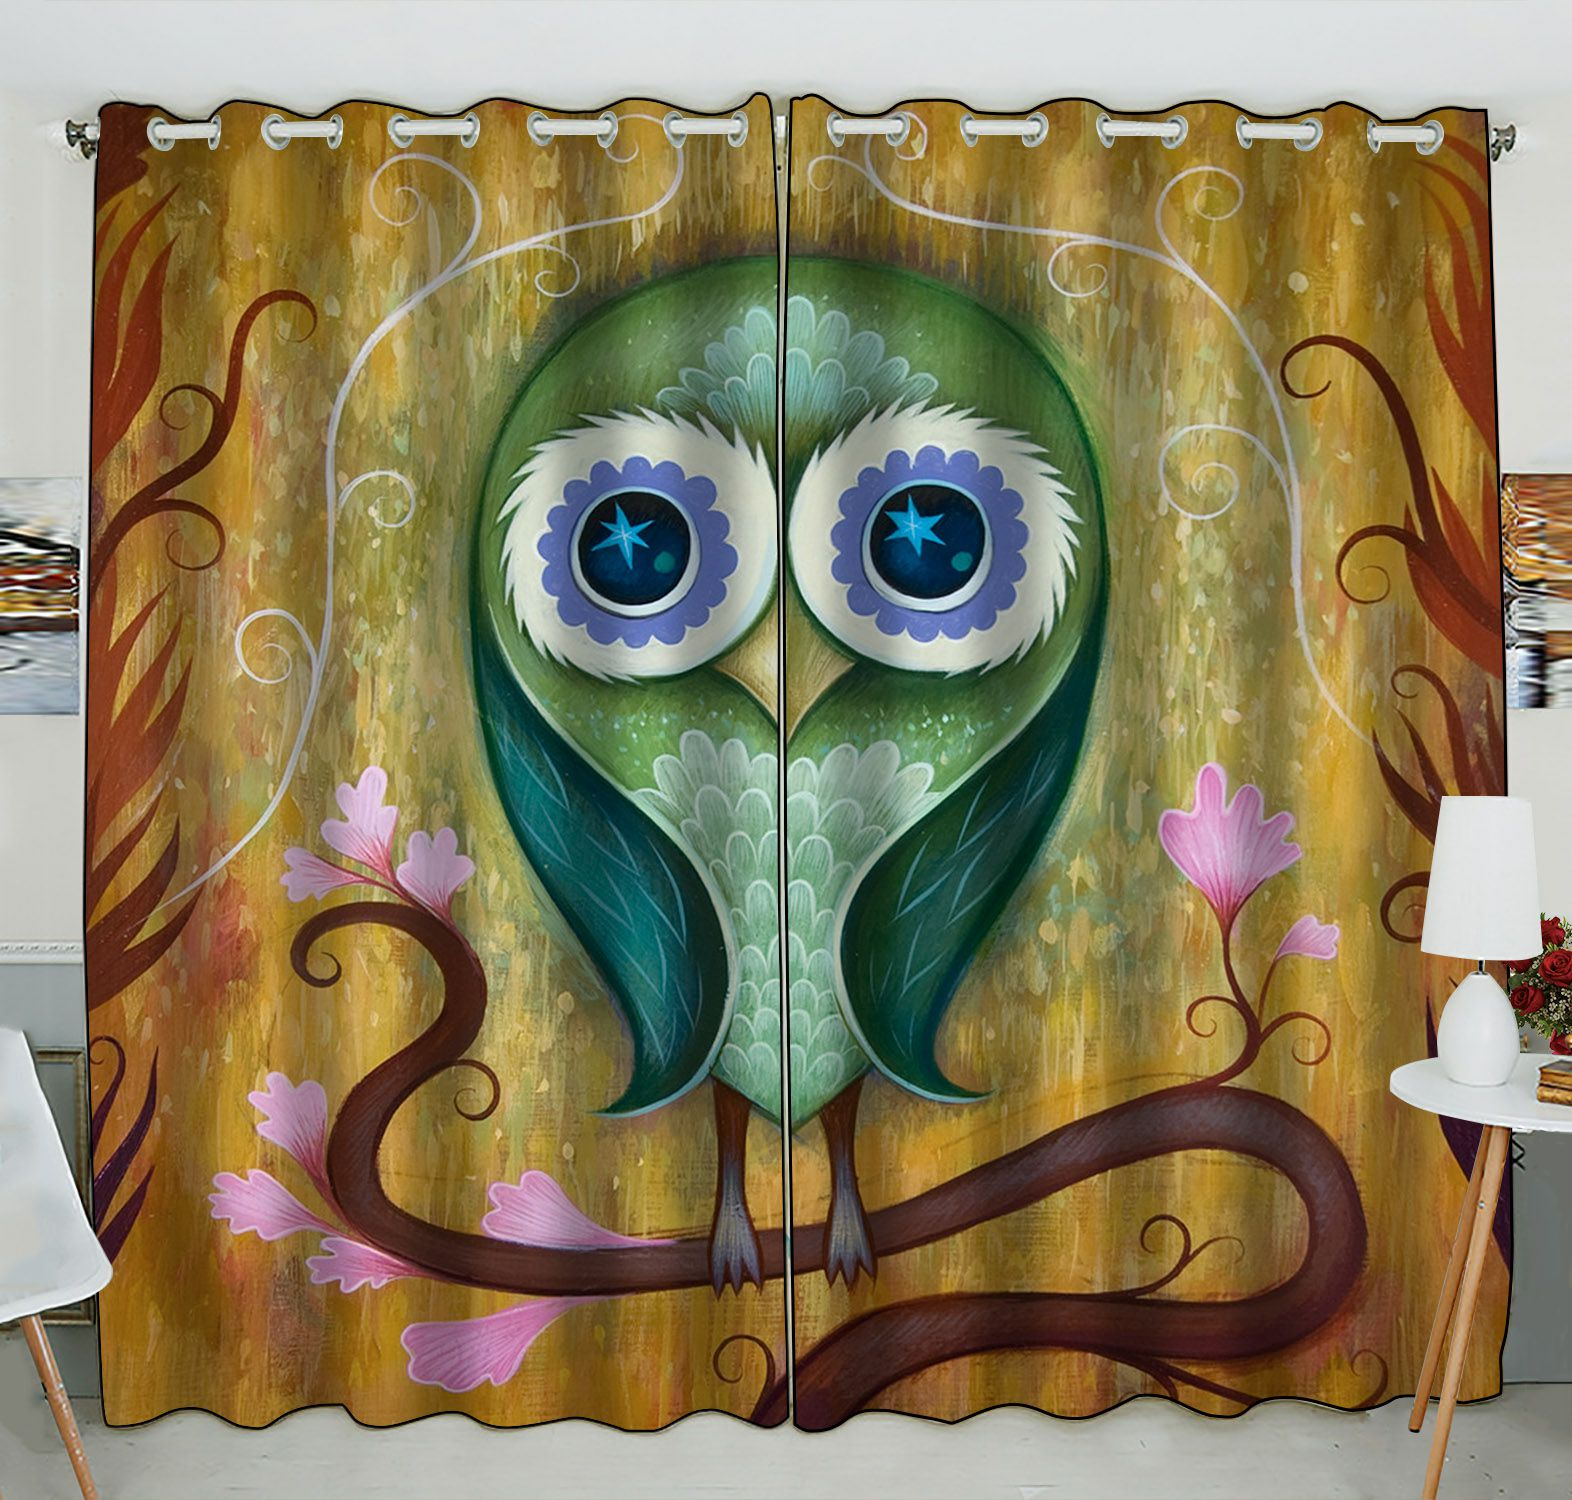 ZKGK Owl Art Pattern Window Curtain Drapery/Panels/Treatment For Living Room Bedroom Kids Rooms 52x84 inches Two Panel